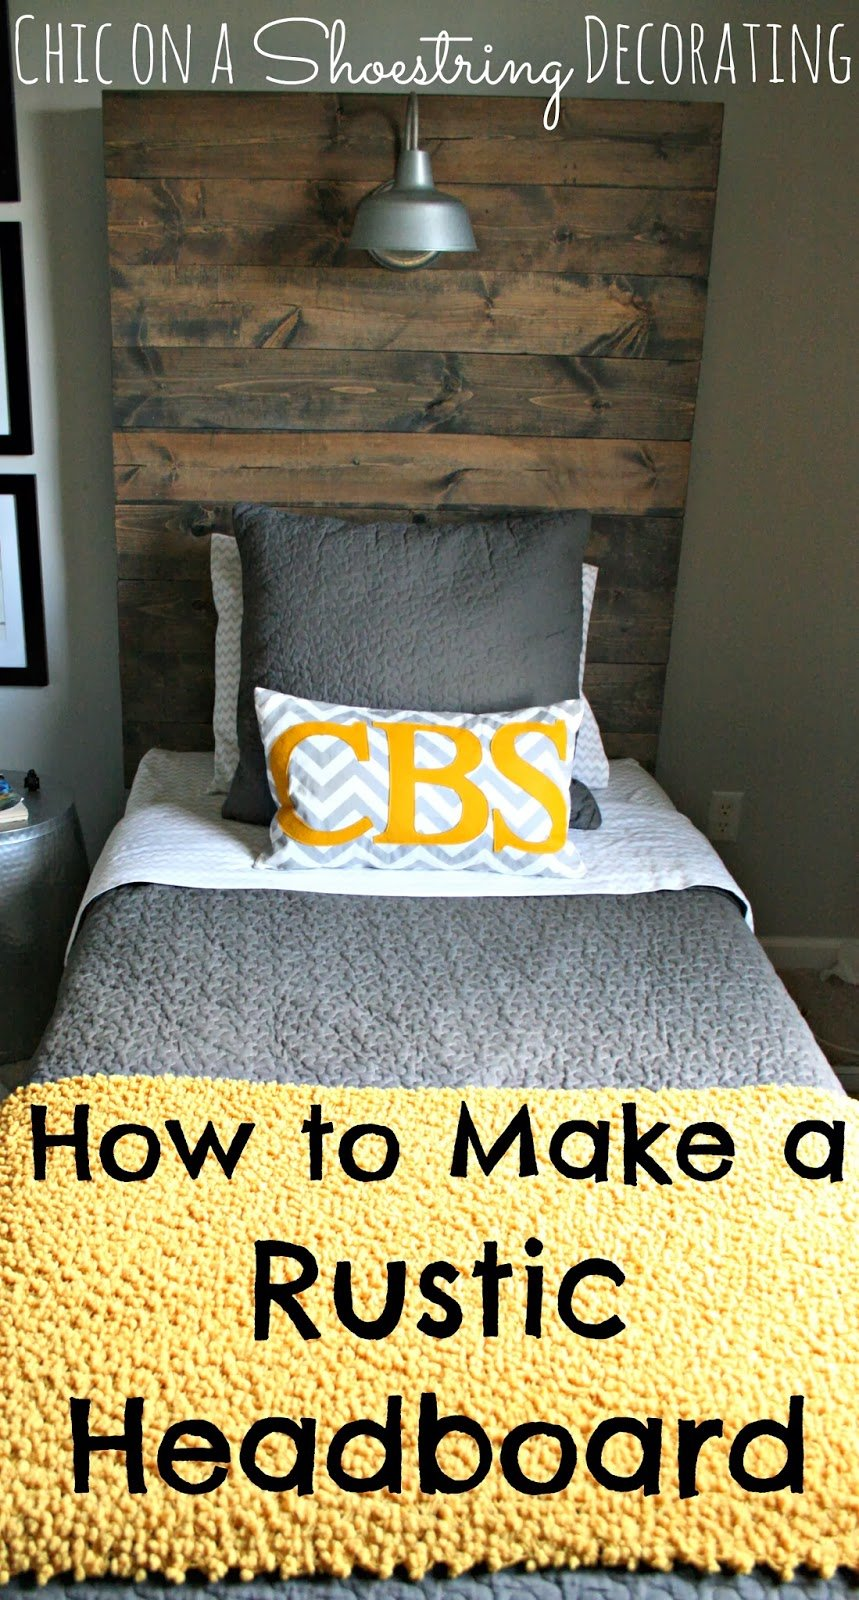 Chic Shoestring Decorating Build Rustic Barn Wood Headboard Ideas